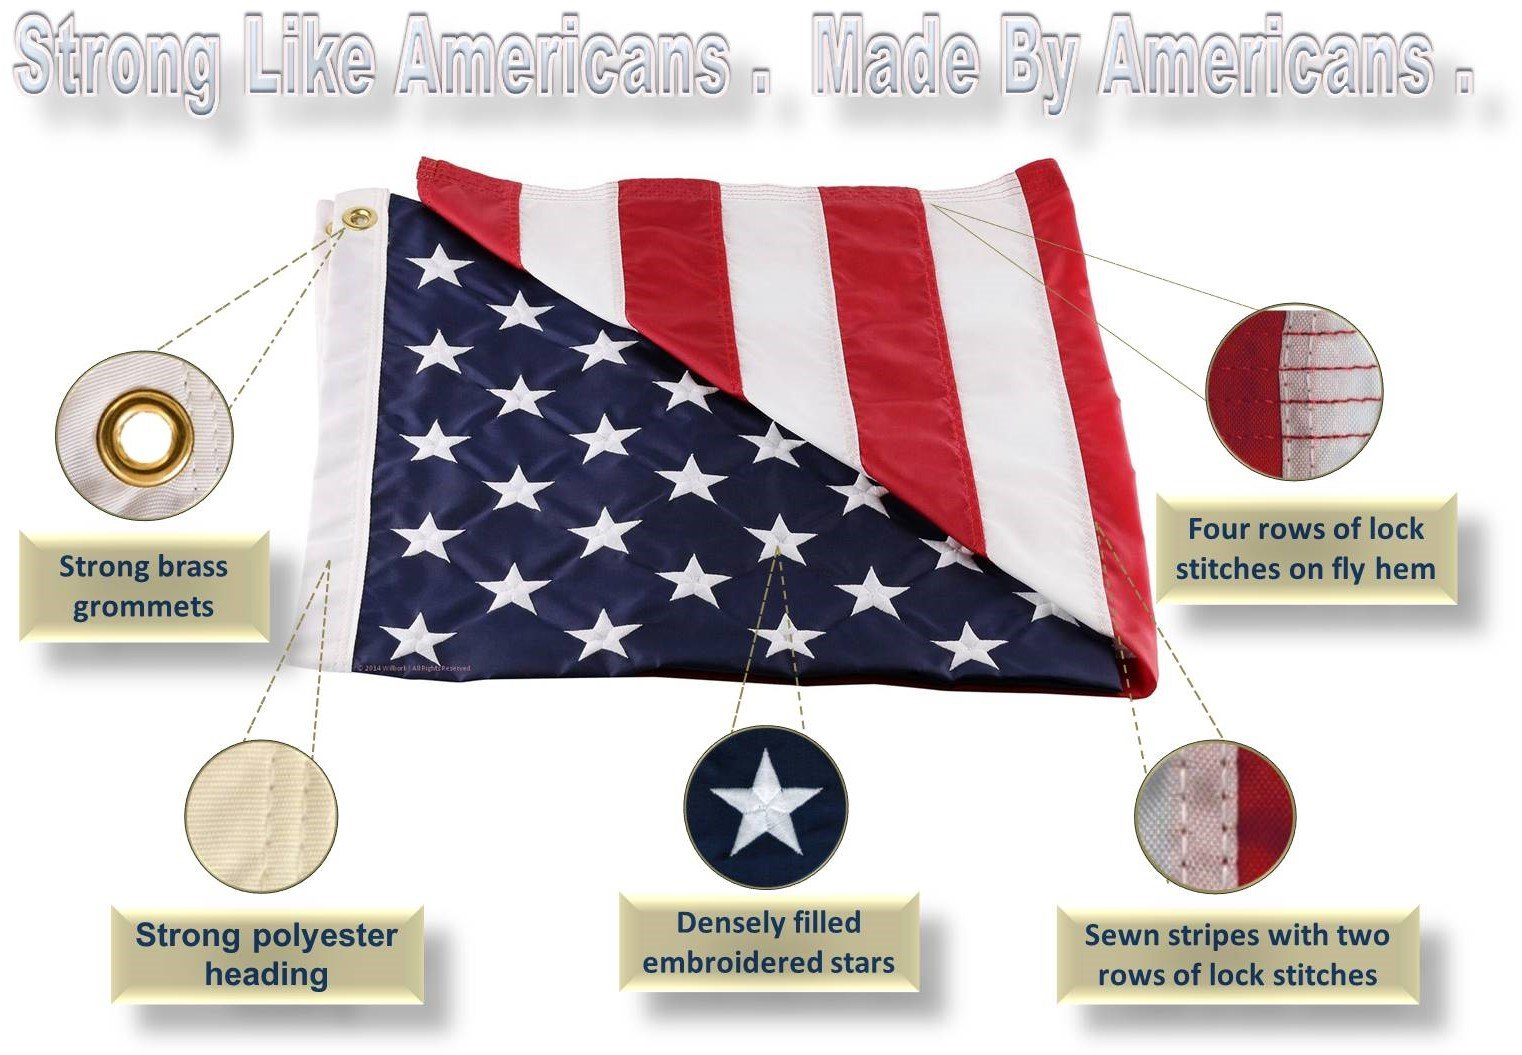 Wilbork American Flag - 100% Made in USA - Strong Like Americans Made by Americans: Embroidered Stars - Sewn Stripes 6x10 ft Outdoor Flag by Wilbork (Image #2)